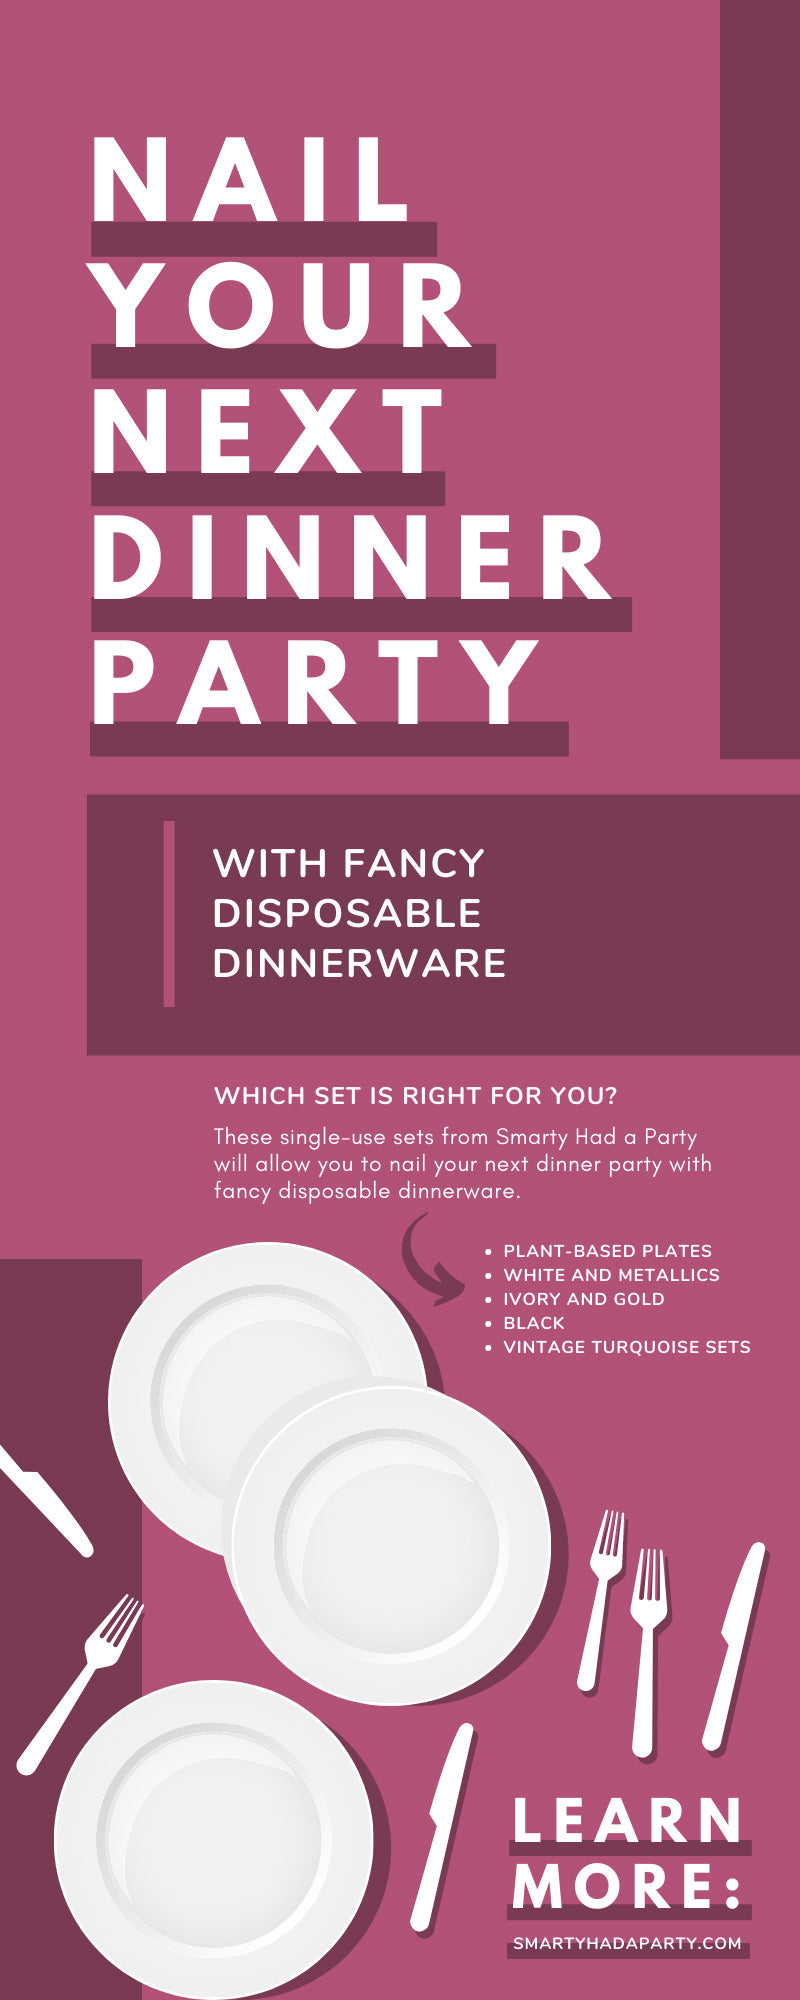 Nail Your Next Dinner Party With Fancy Disposable Dinnerware